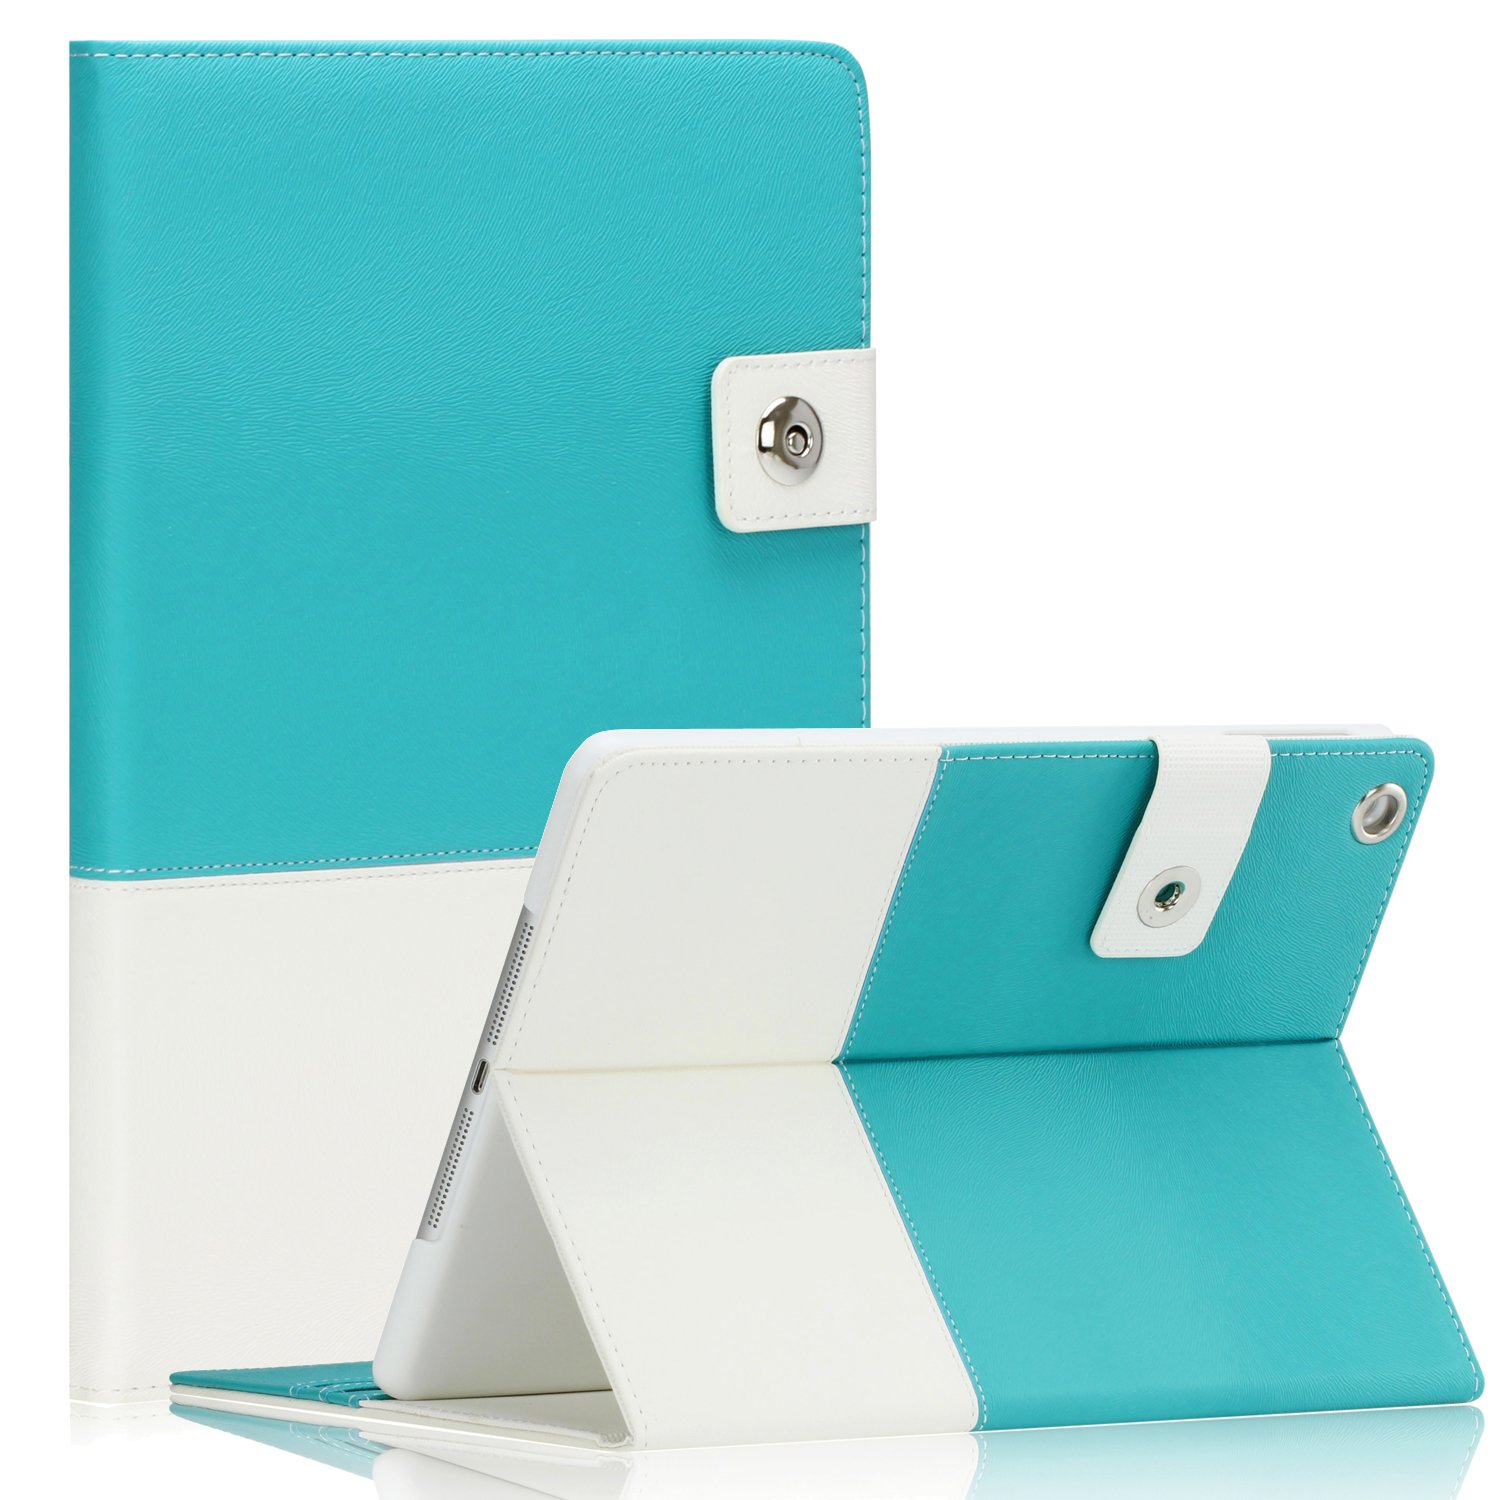 saveicon blue hybrid ipad 2 3 4 pu leather case